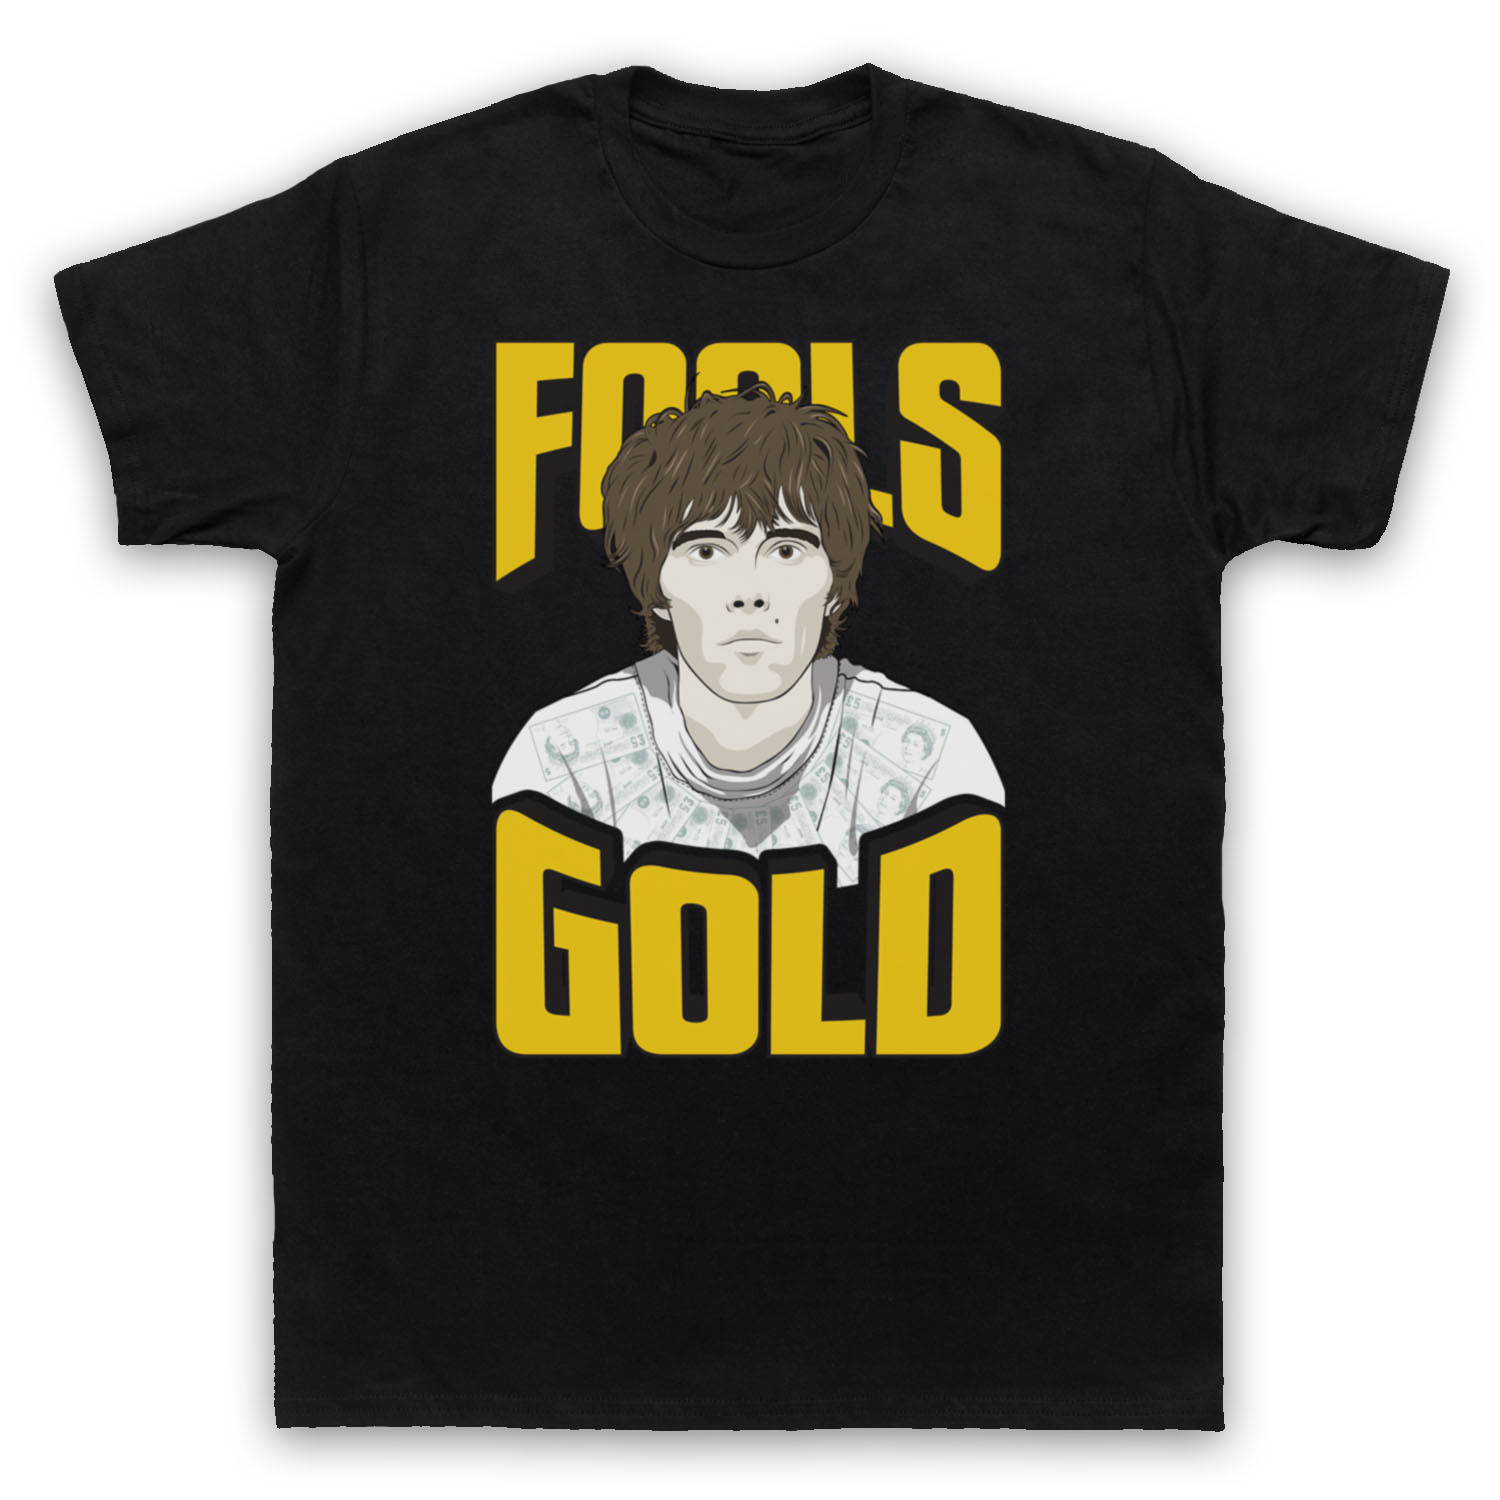 Women T- Shirt FOOLS GOLD THE STONE ROSES MADCHESTER ROCK UNOFFICIAL T-SHIRT LADIES